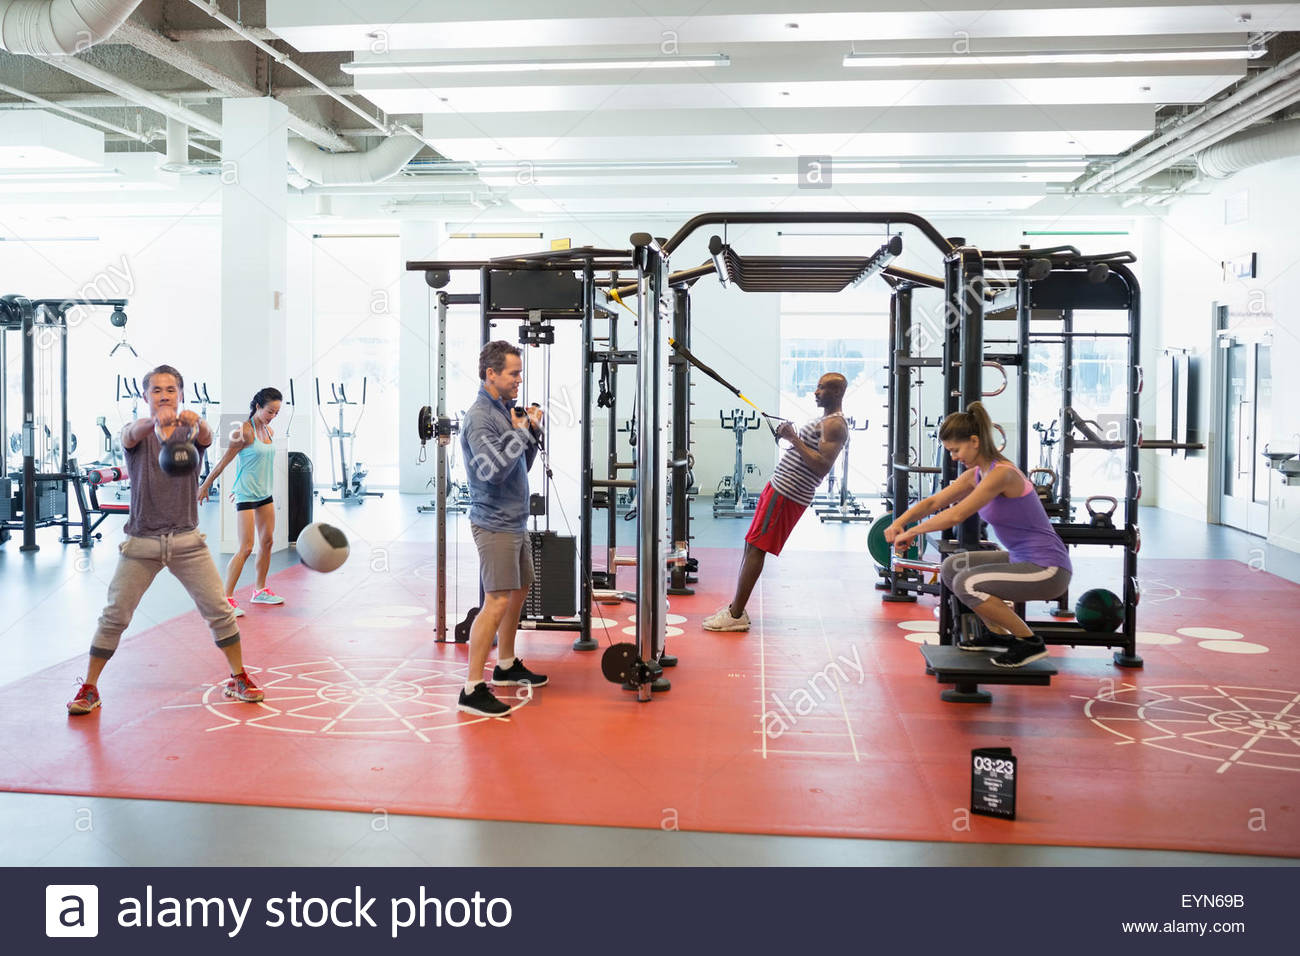 People exercising in gym - Stock Image